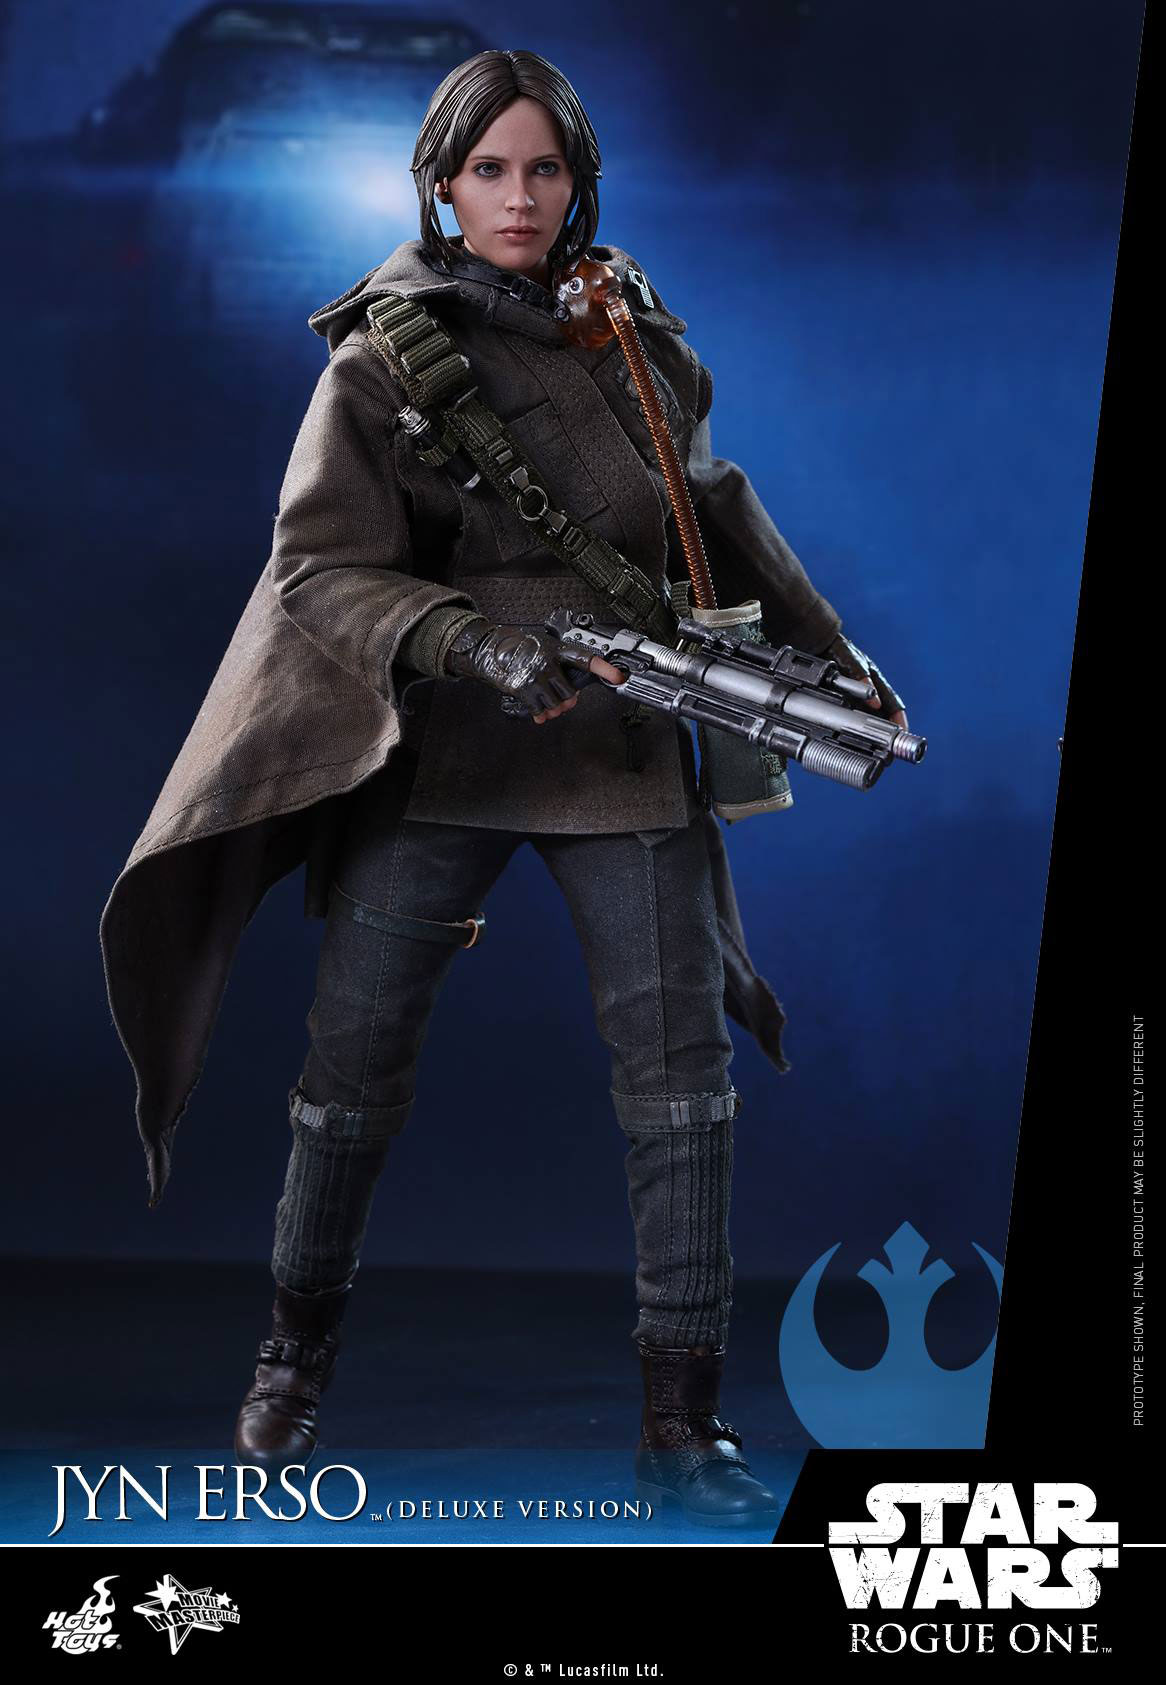 hot-toys-star-wars-rogue-one-figure-deluxe-version-3